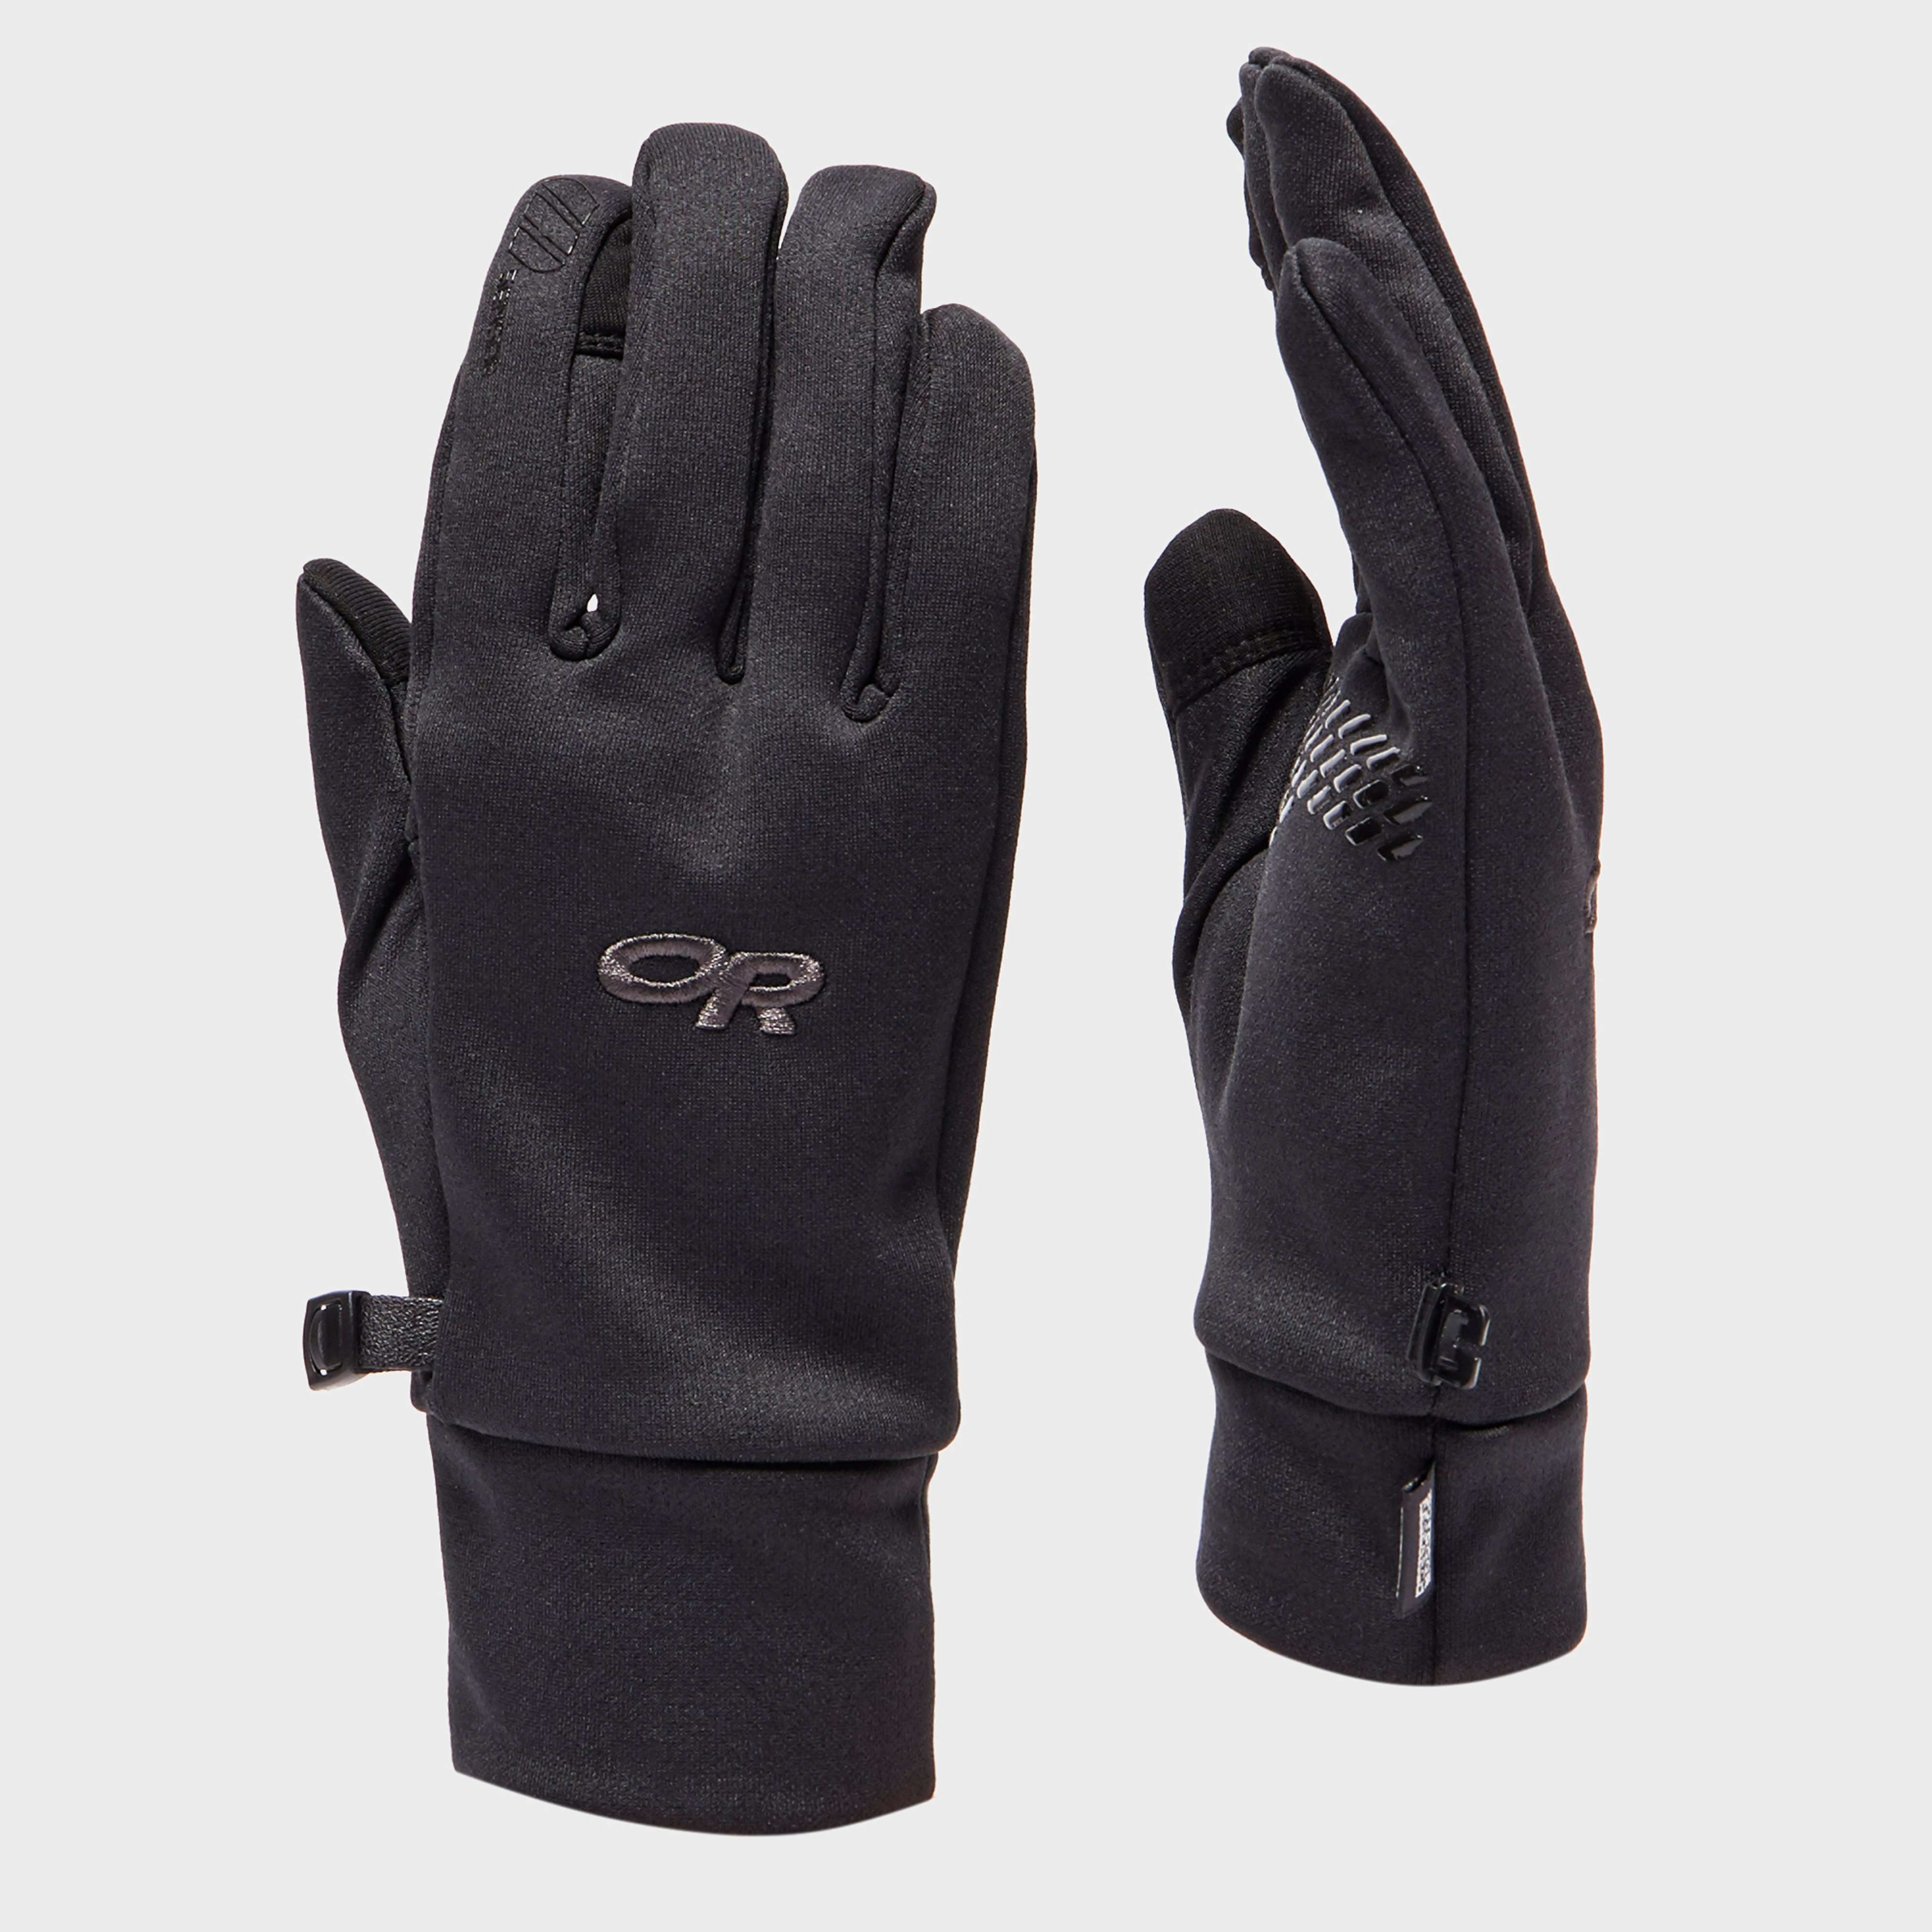 OUTDOOR RESEARCH Men's PL100 Sensor Gloves